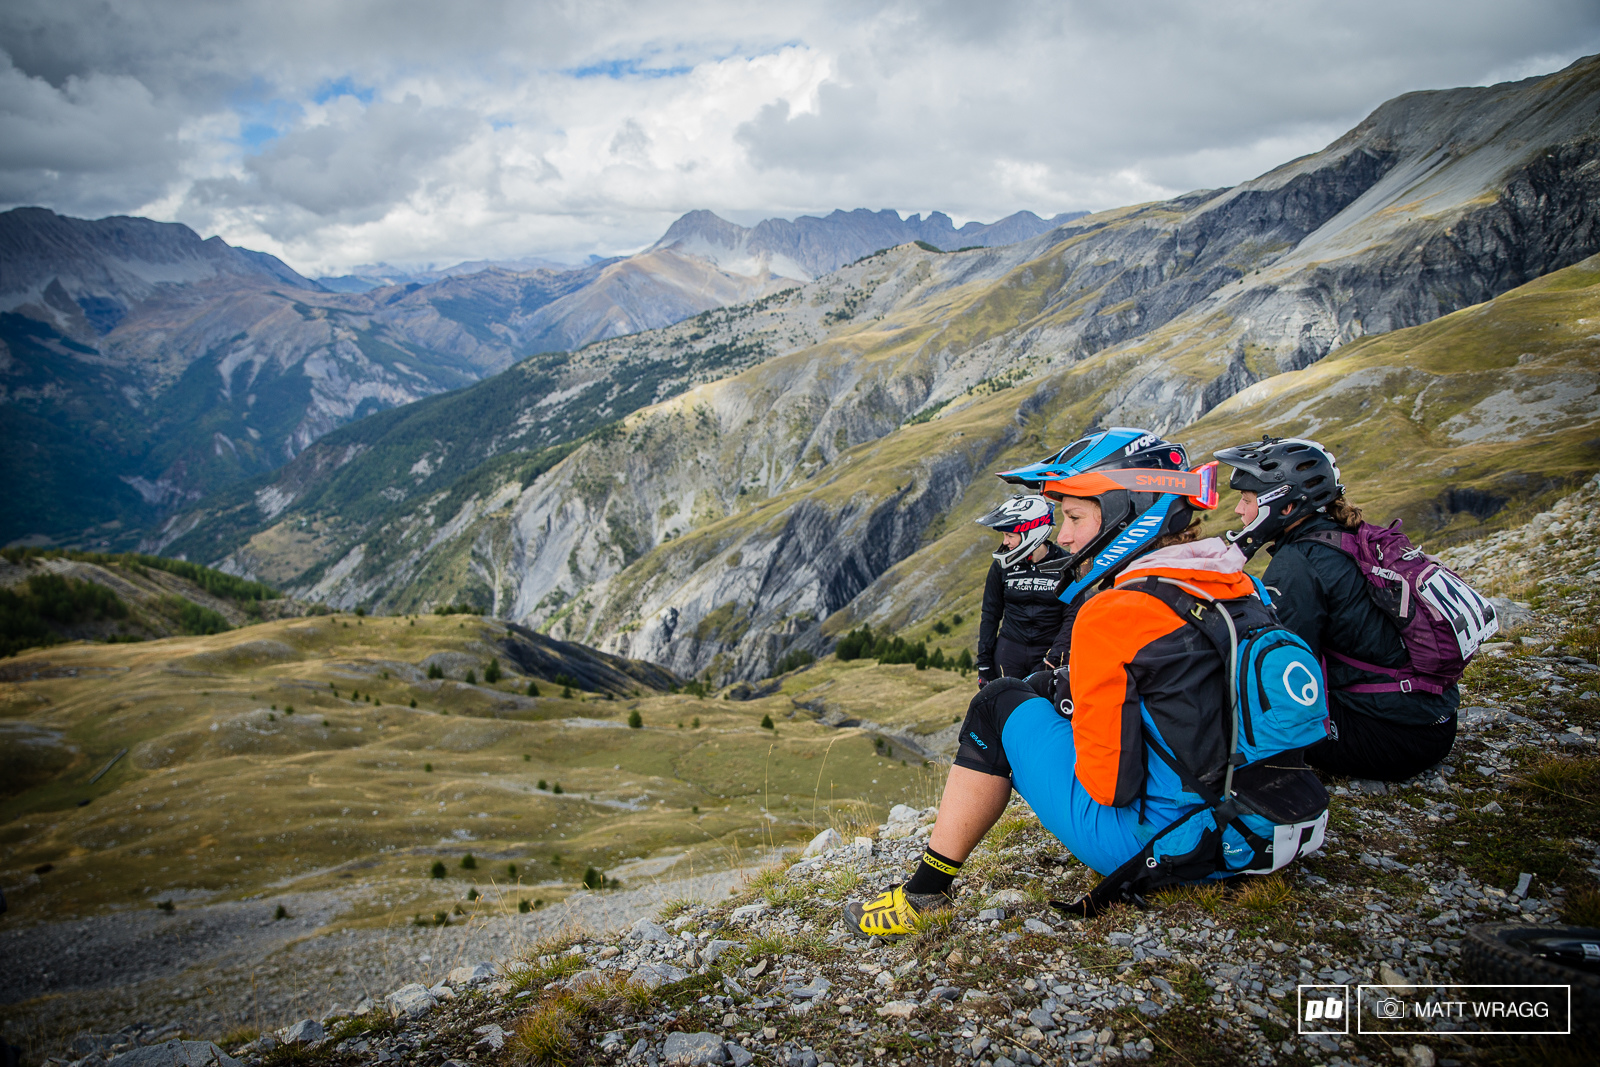 With four hours between the first two stages there was plenty of time for the mammoth climb and some time to soak in the view at the head of the stage.